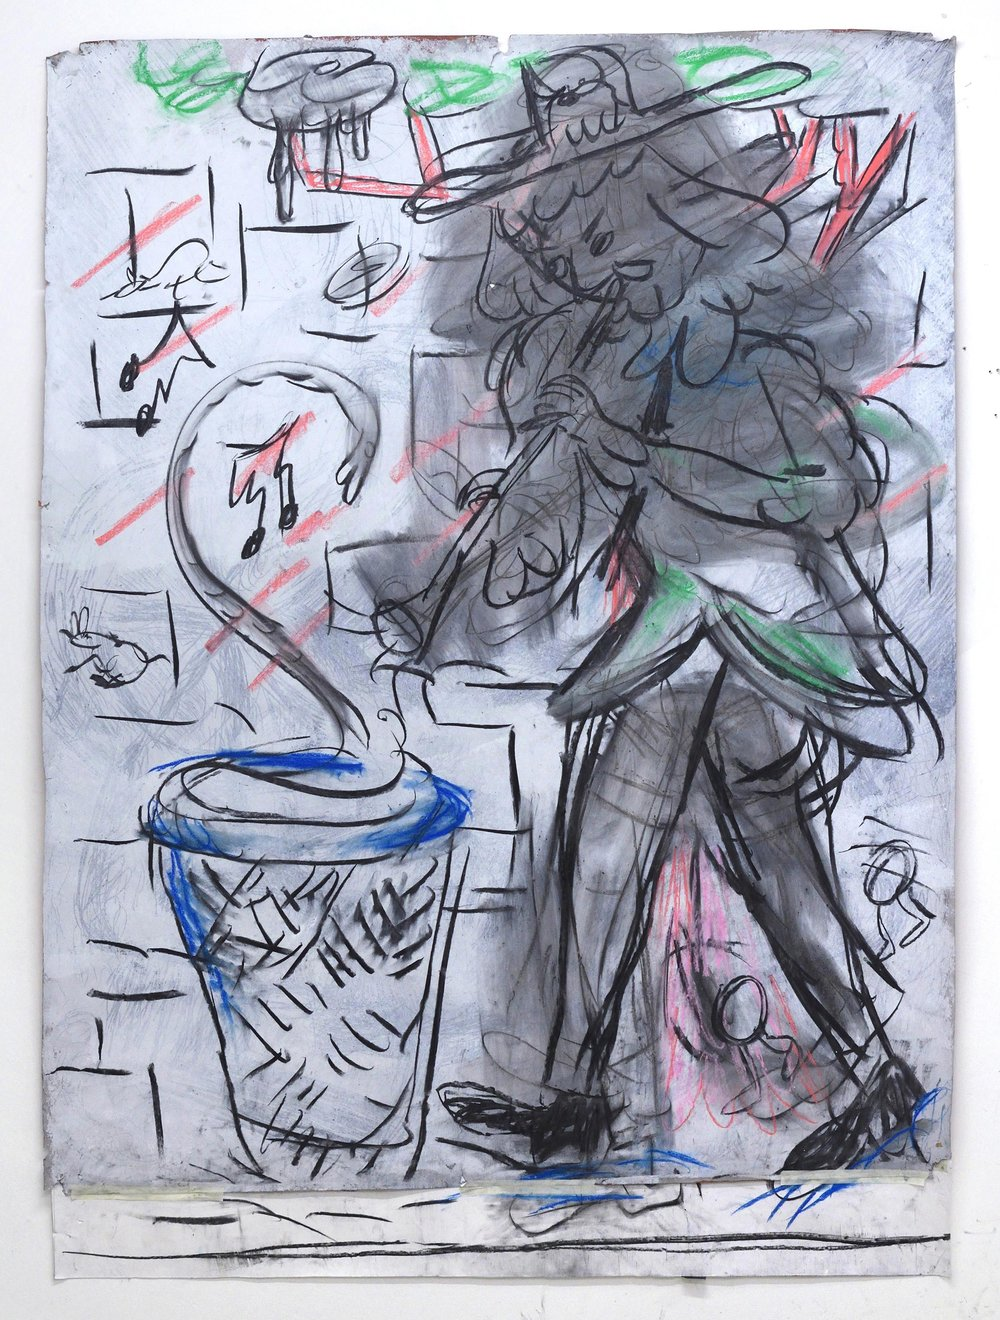 'Deaf piper pied charmer' 2018   Charcoal and pastel on paper. 200 x 150 cm